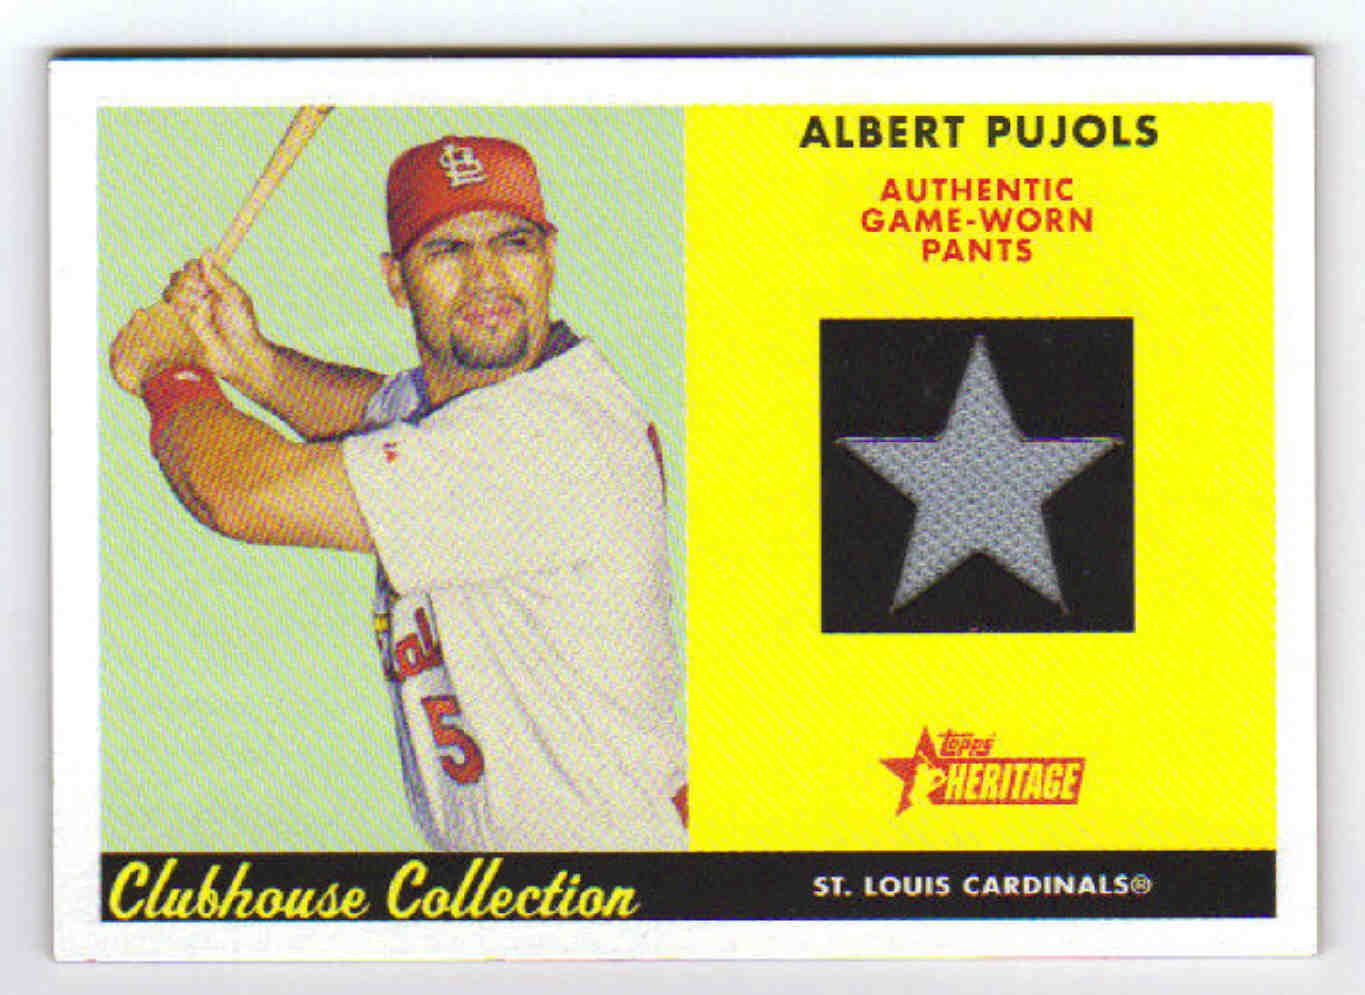 2007 Topps Heritage Clubhouse Collection Relics #AJP Albert Pujols Pants C